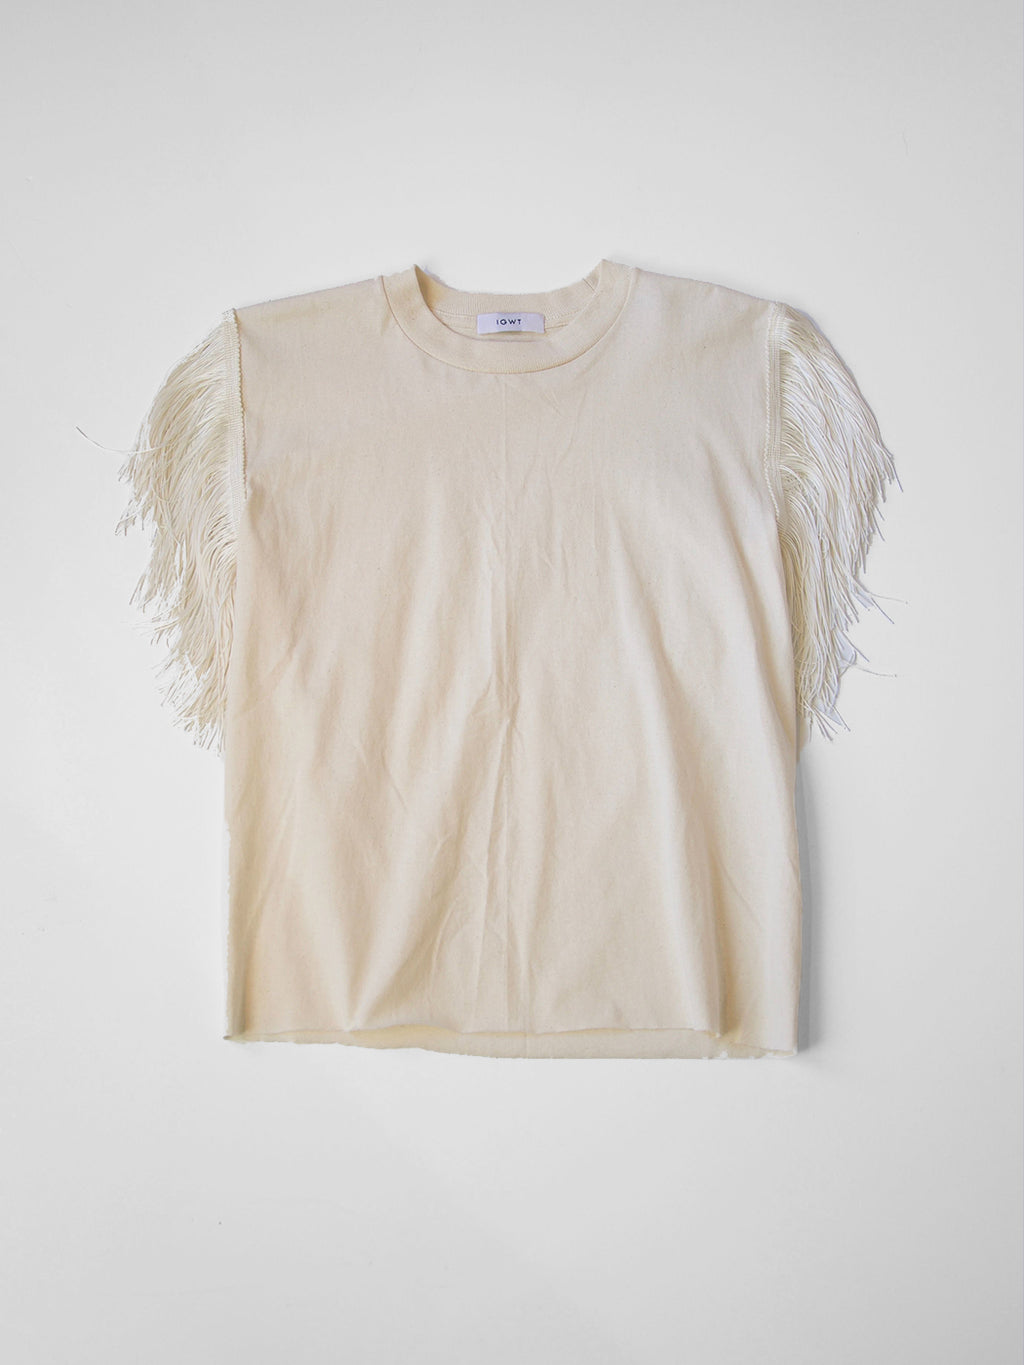 IGWT - Boyne Chainette Tee / Natural